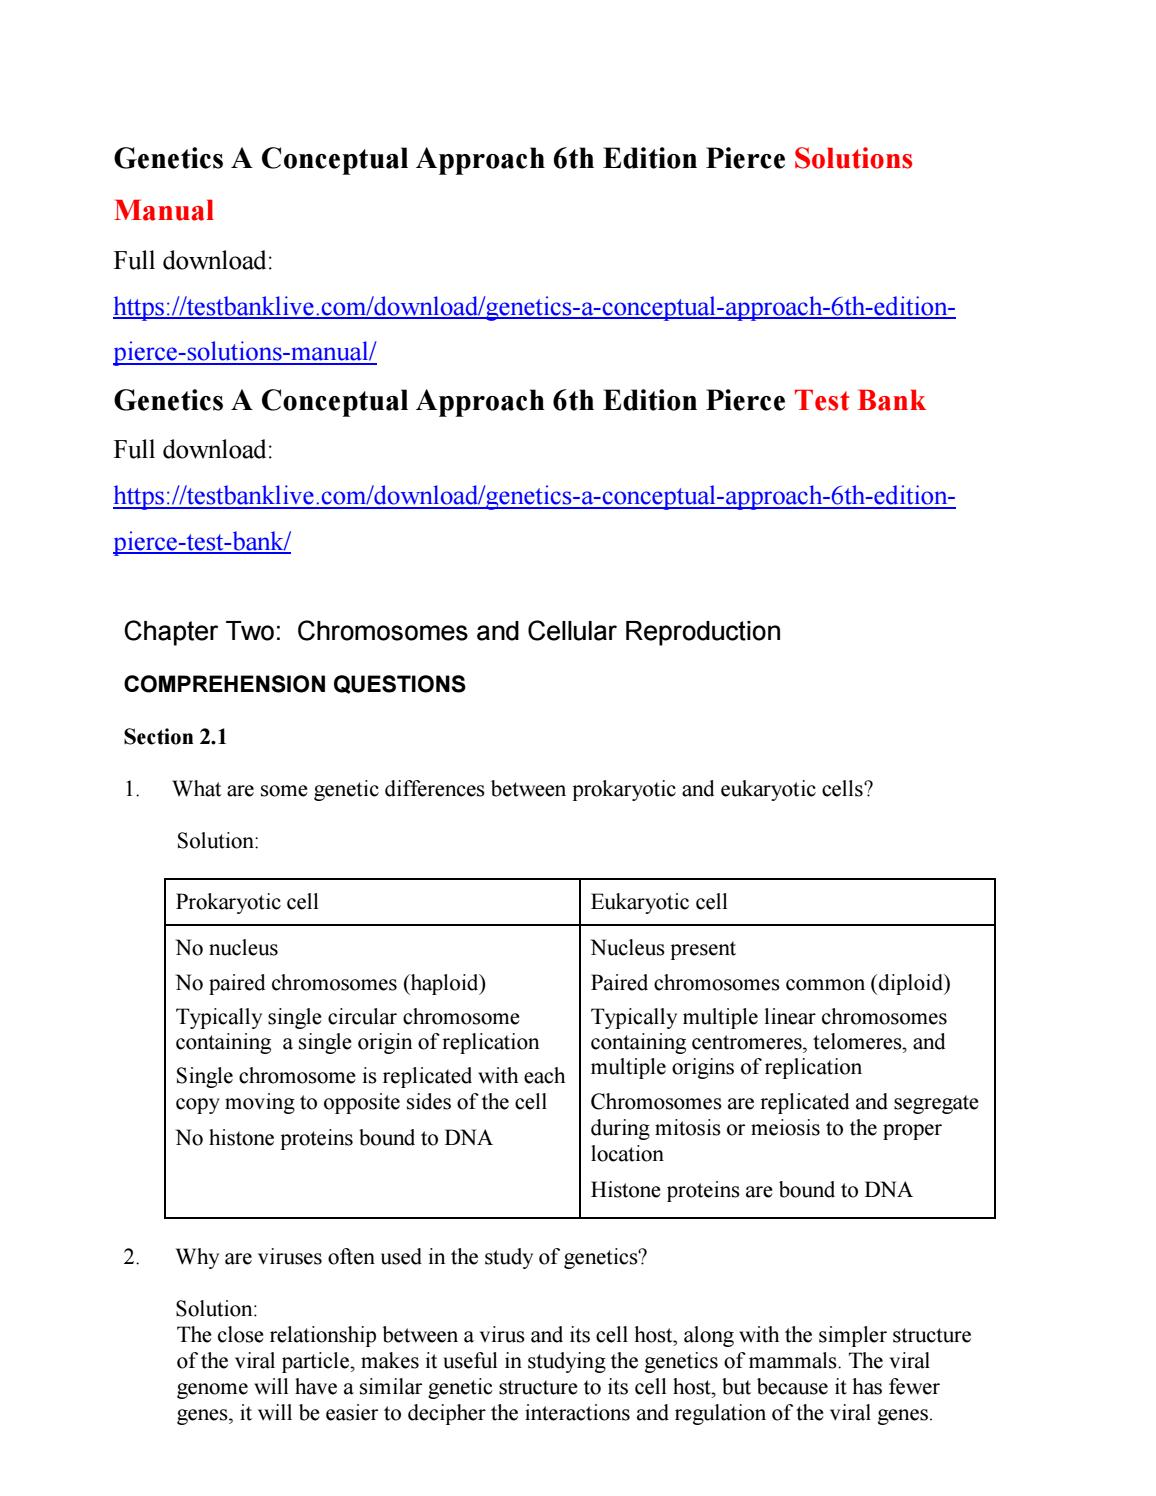 Genetics a conceptual approach 6th edition pierce solutions manual by  ccc224 - issuu